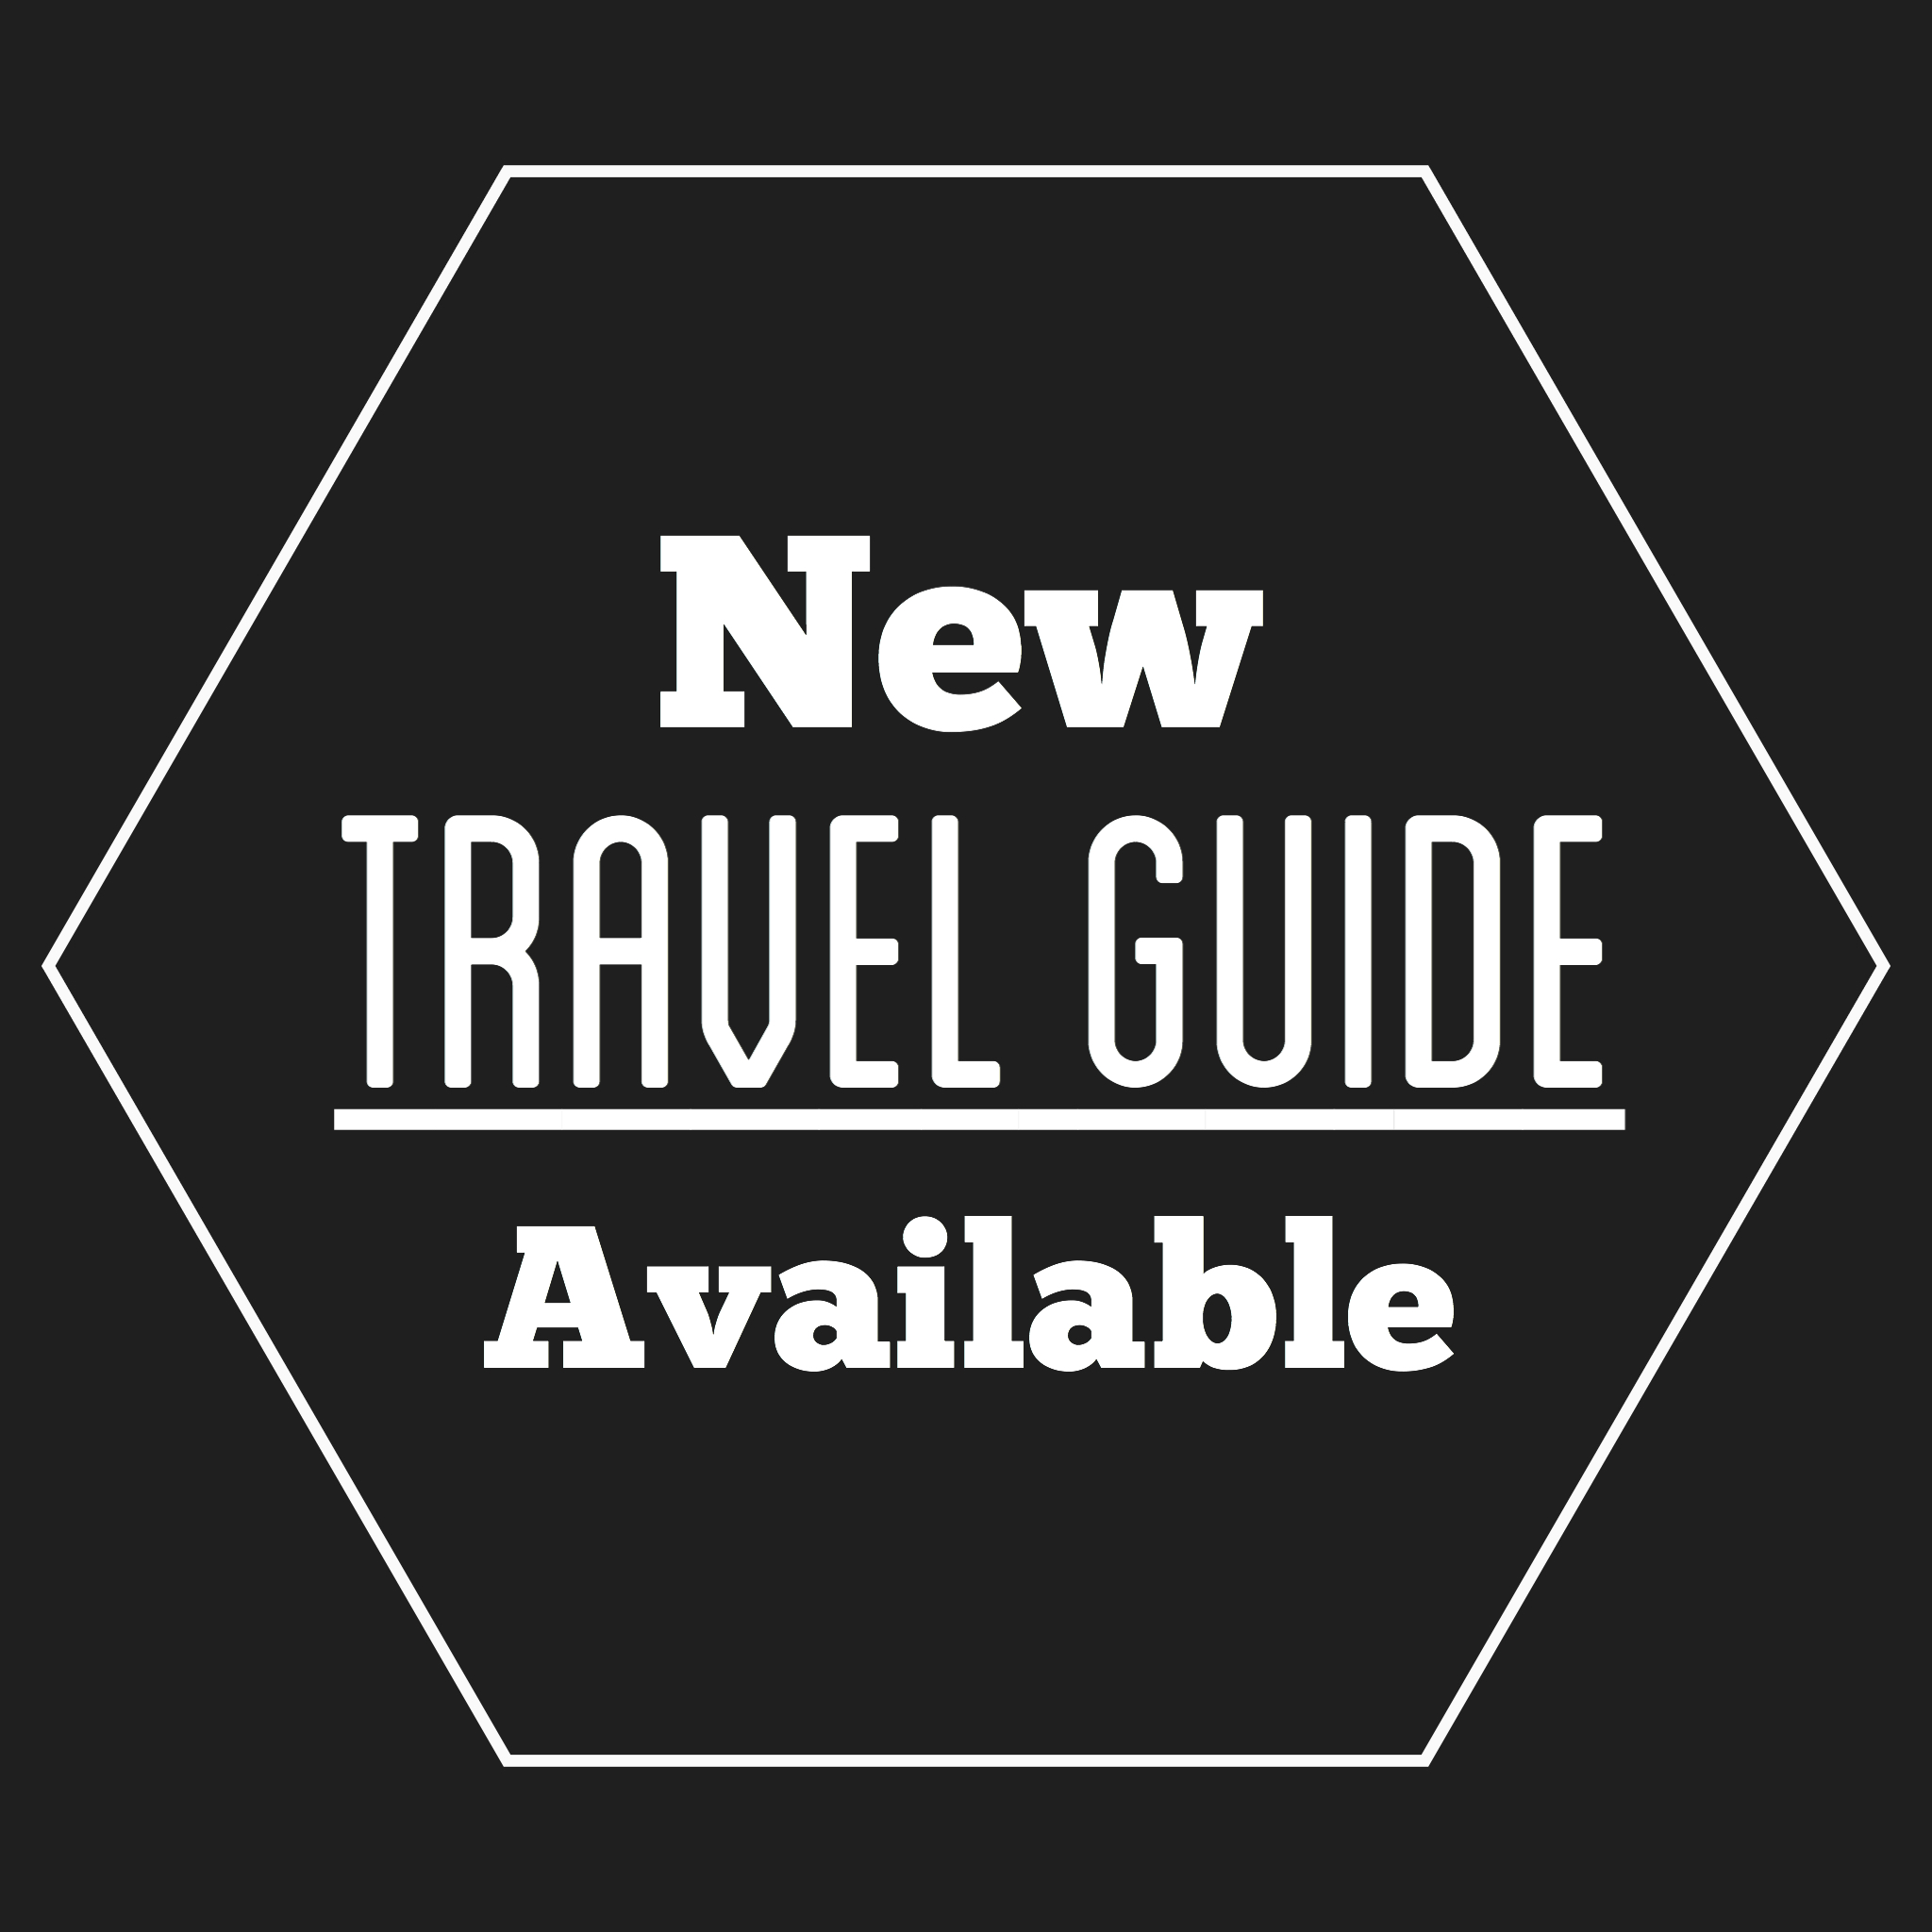 The Yosemite Travel Guide is Now Available!